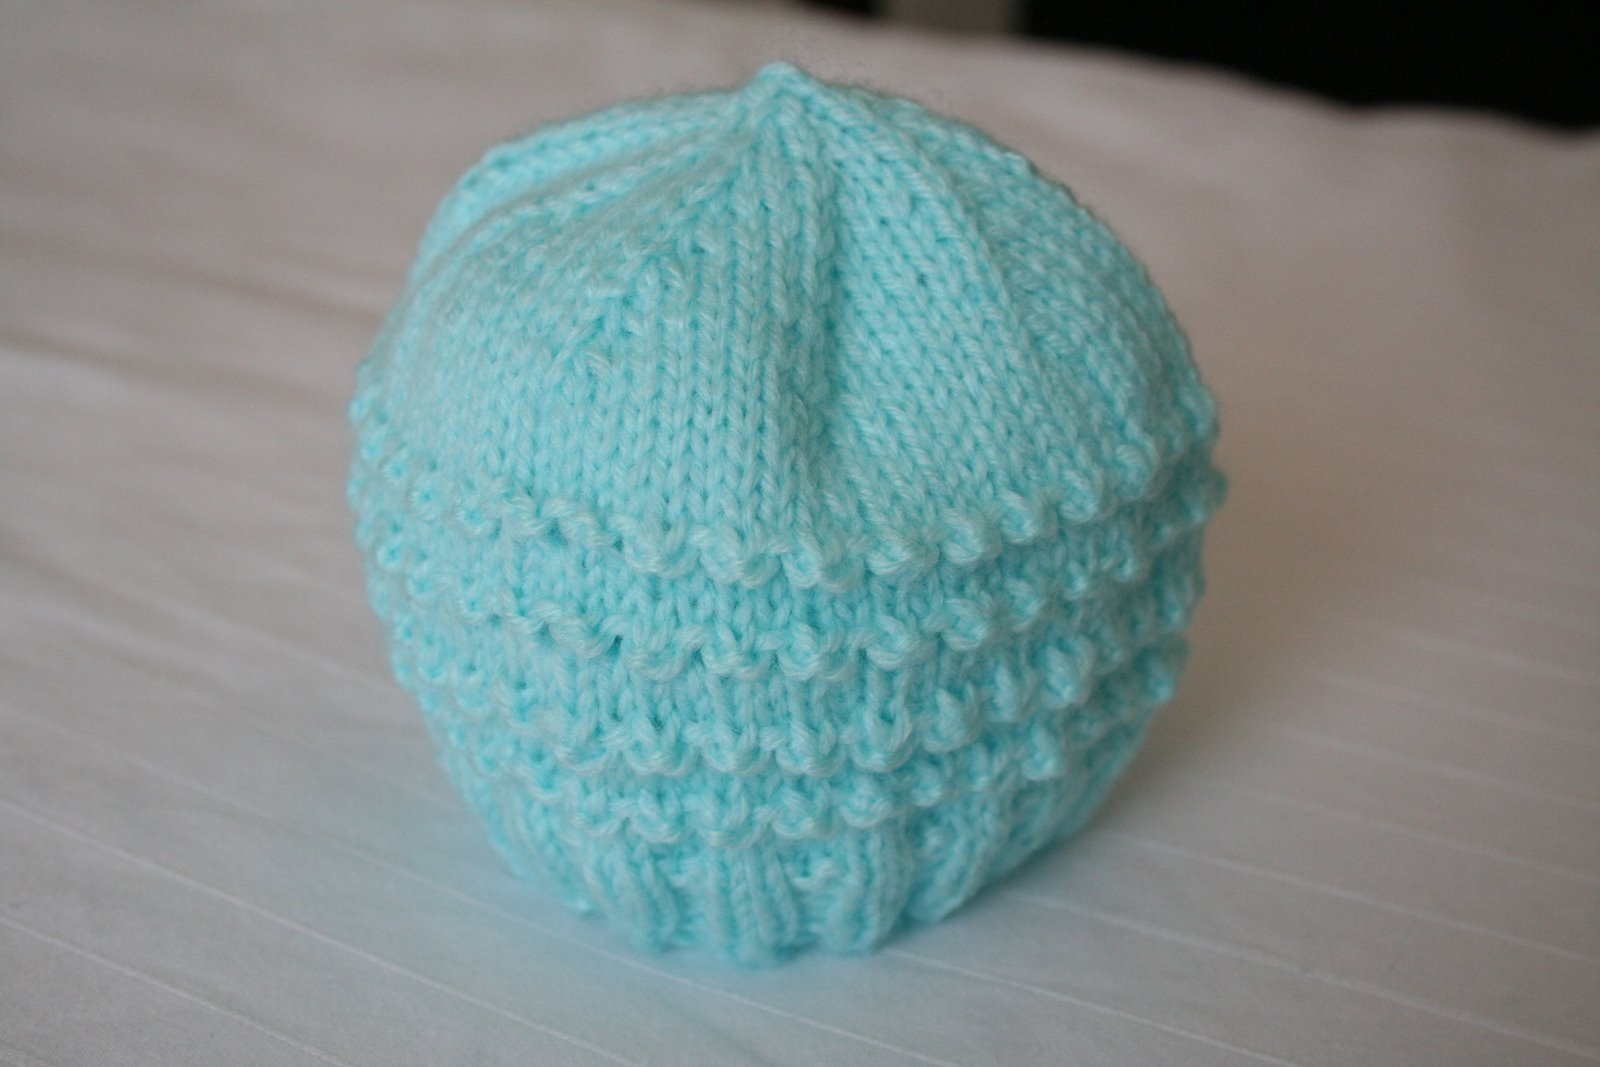 Knitting Caps Patterns : Free Preemie Knitting Patterns images